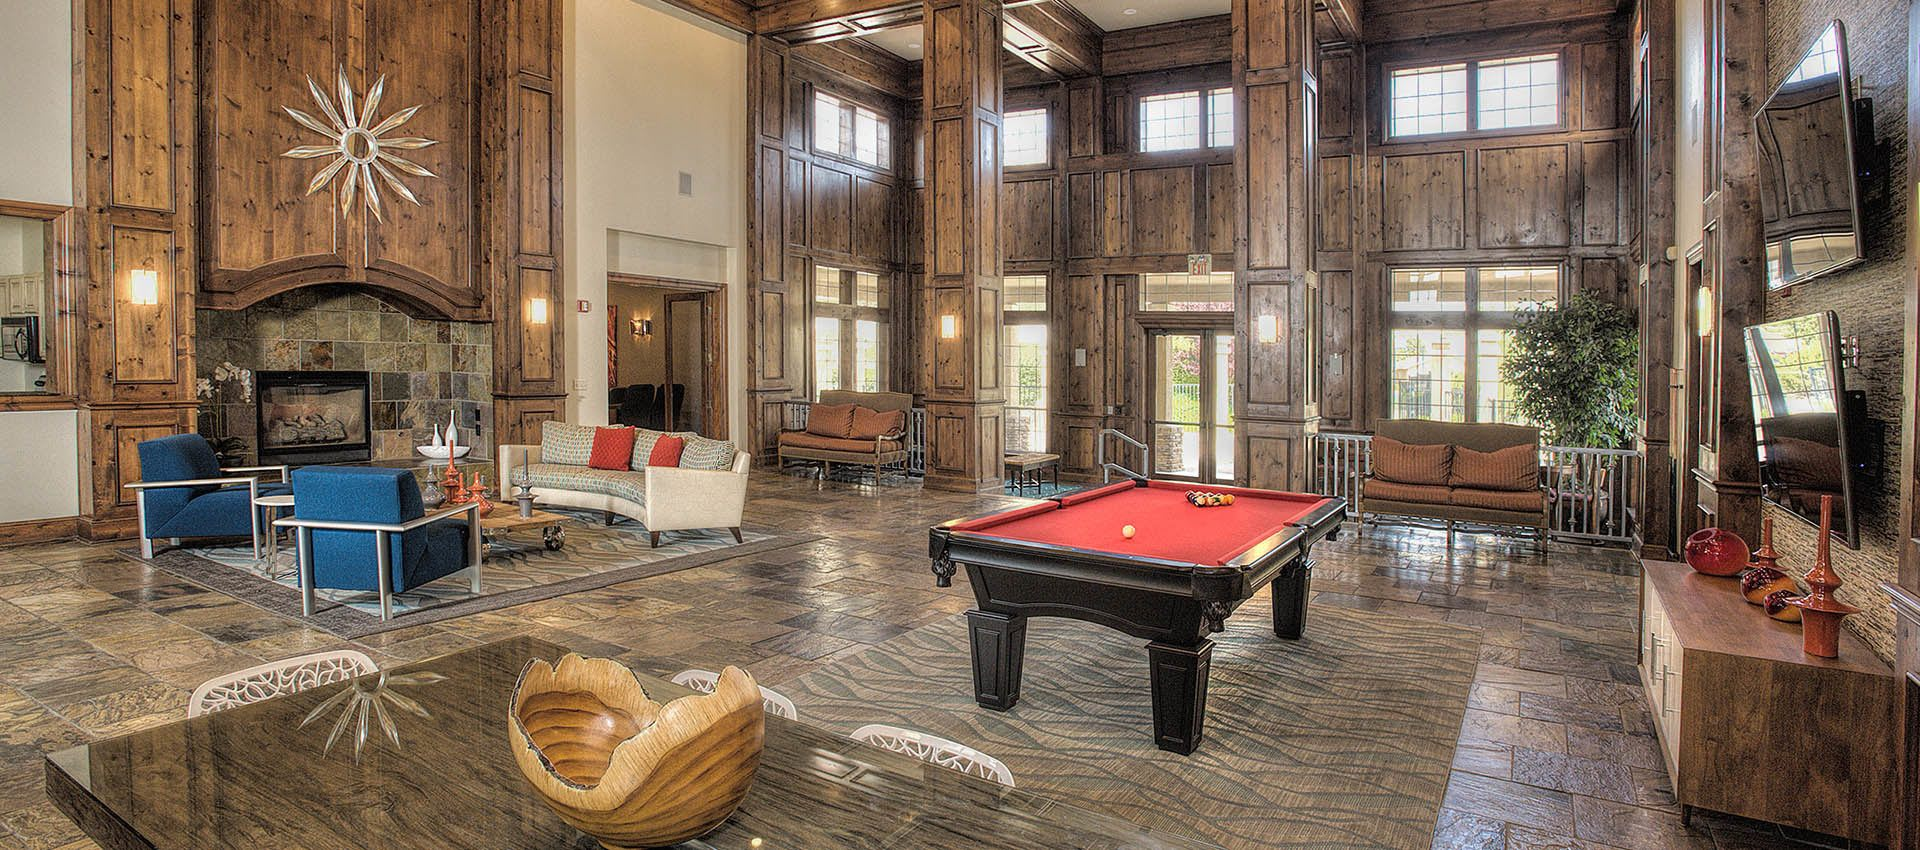 inside of clubhouse with billiards table at The Vintage at South Meadows Condominium Rentals in Reno